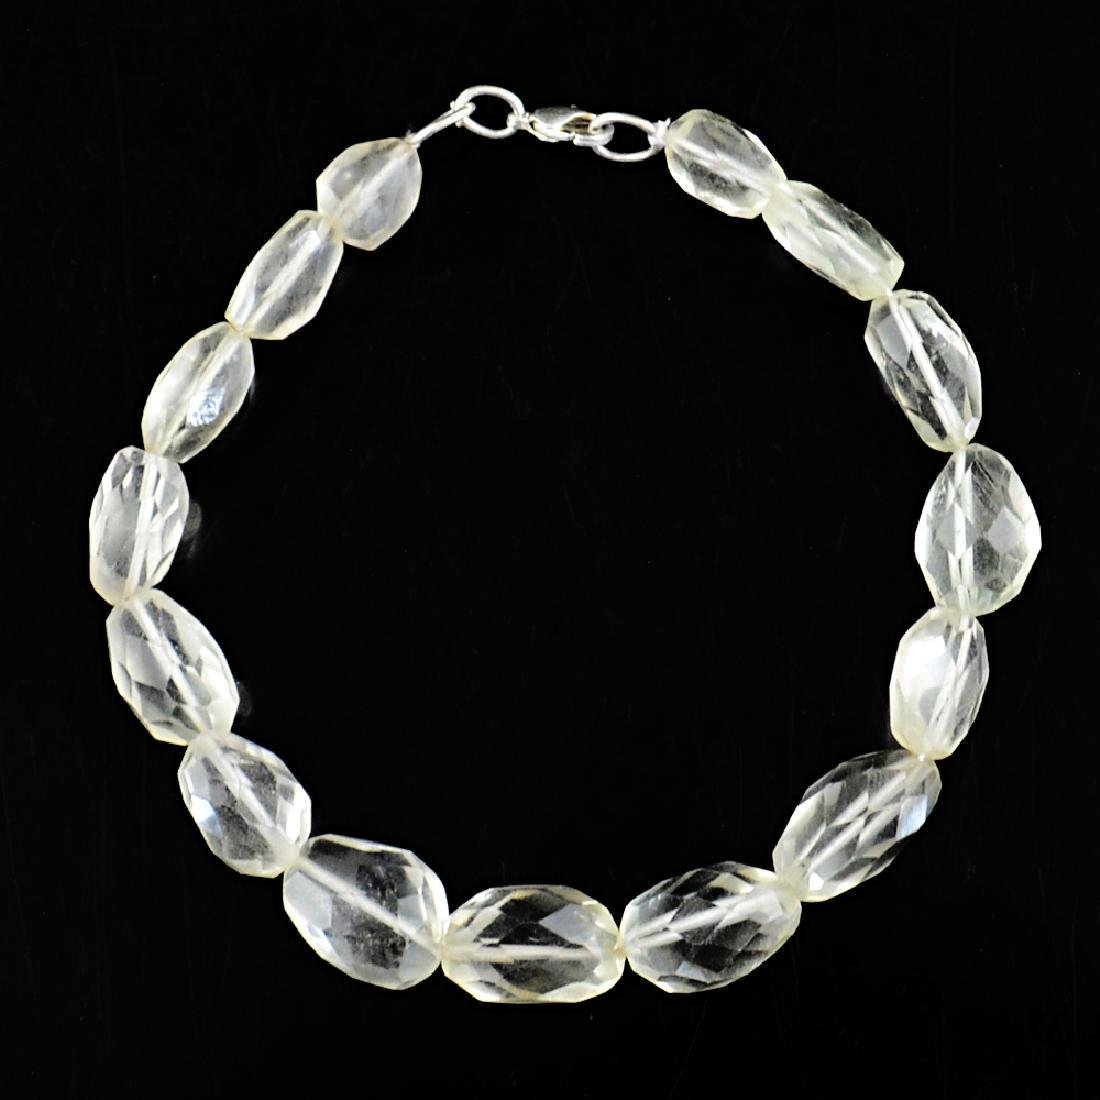 Prasiolite Bracelet with .925 Sterling Silver, length 8